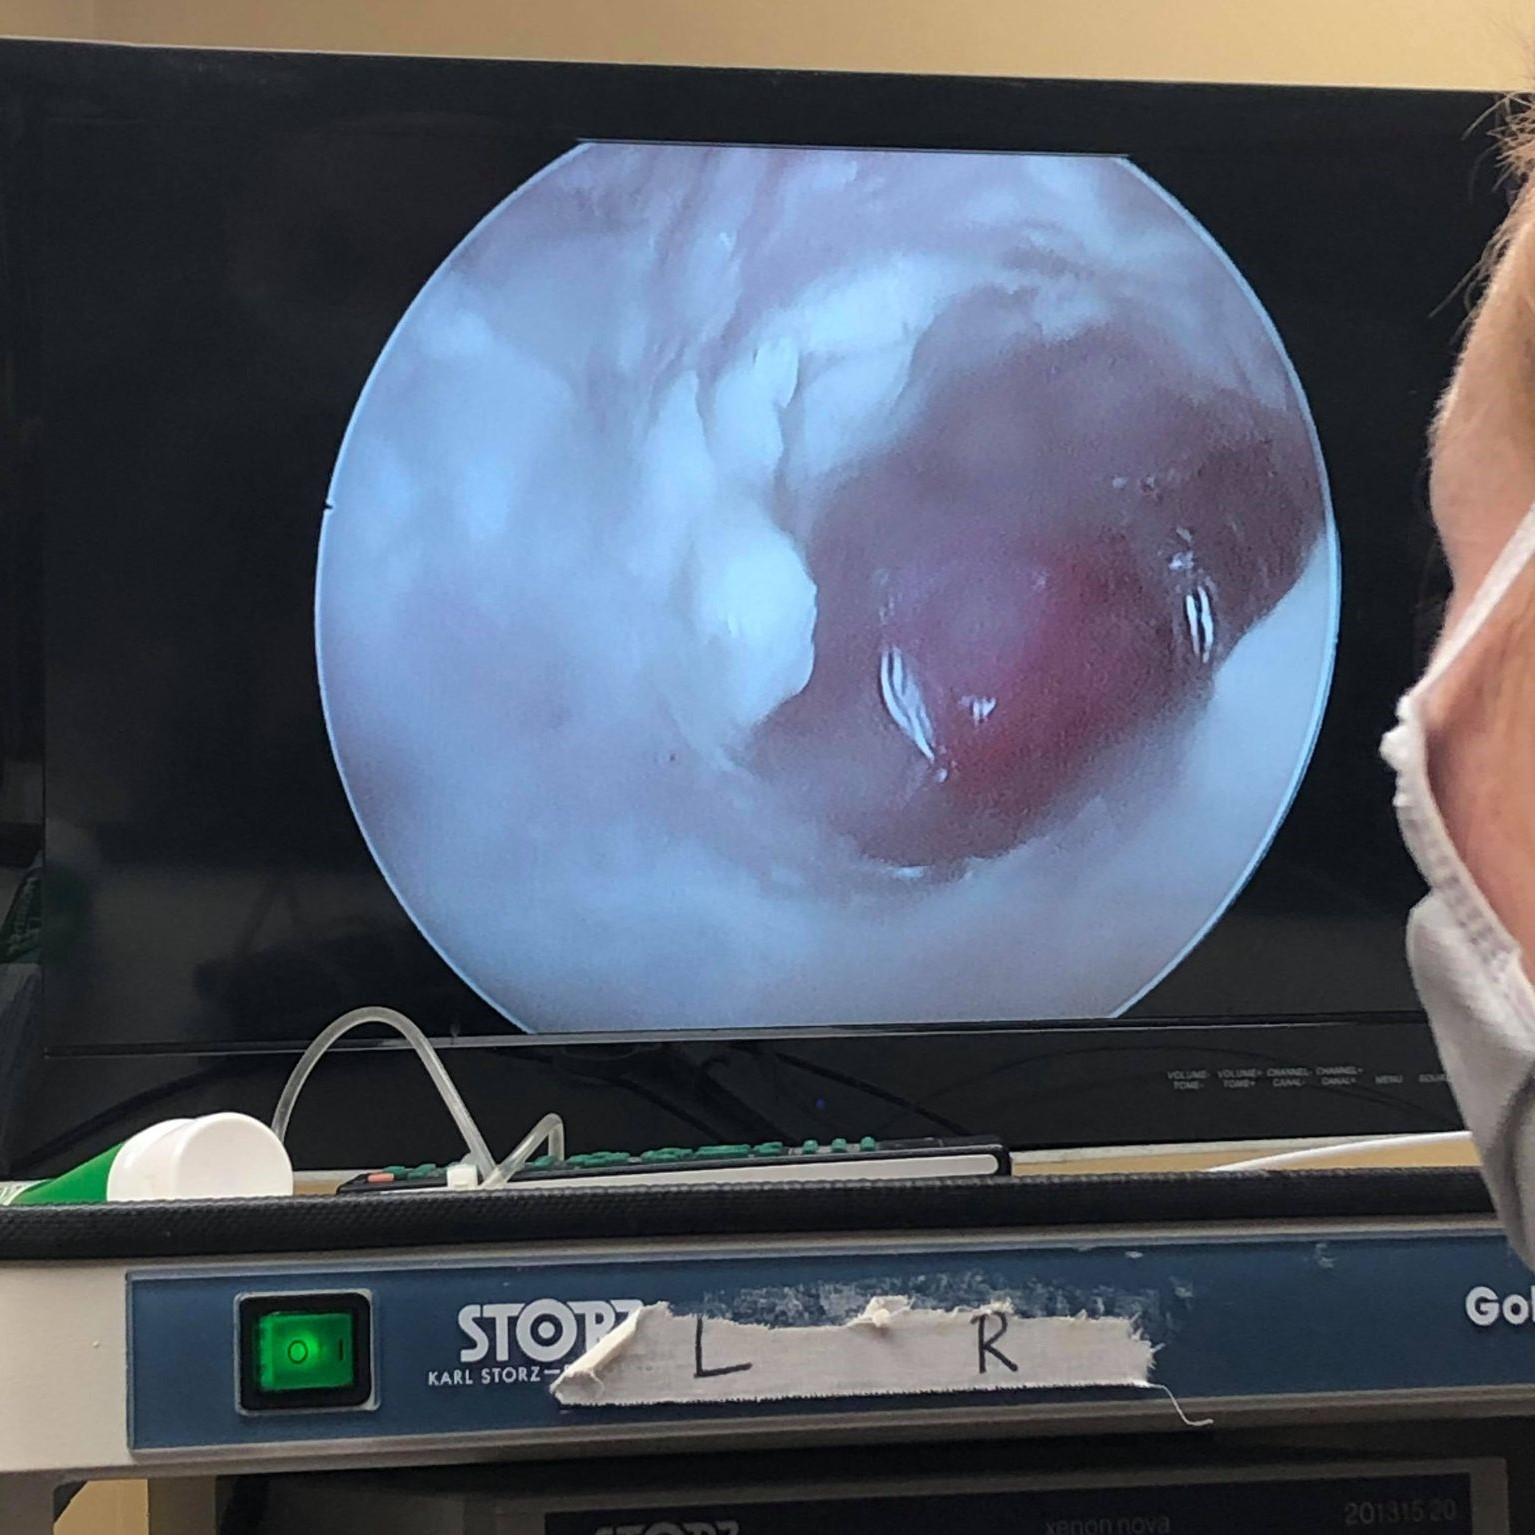 Screen showing what the otoscope records inside the ear canal of a pet.